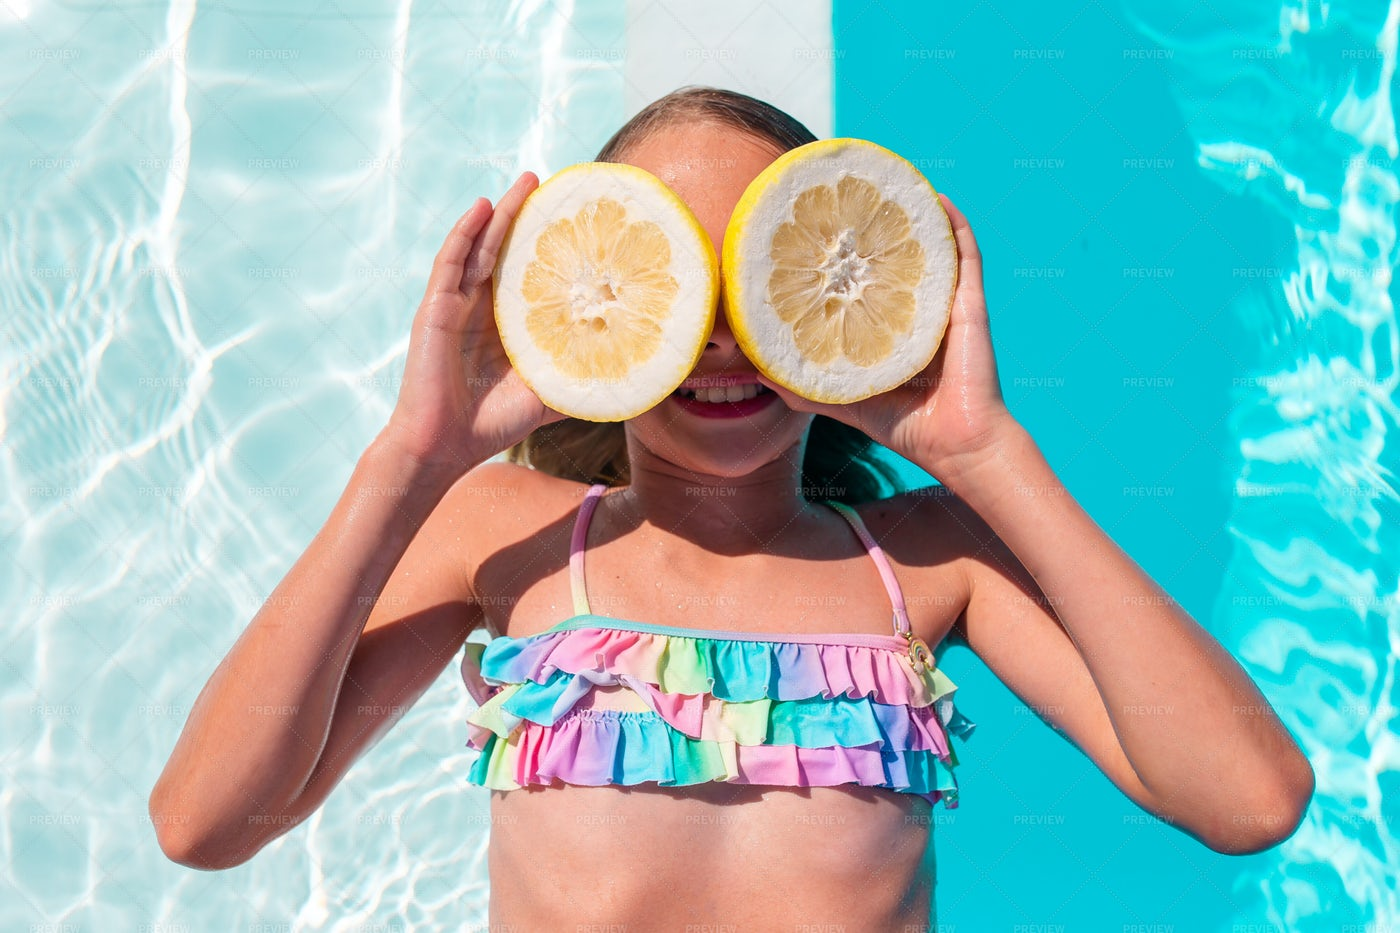 Little Kid Covering Eyes With Lemon: Stock Photos